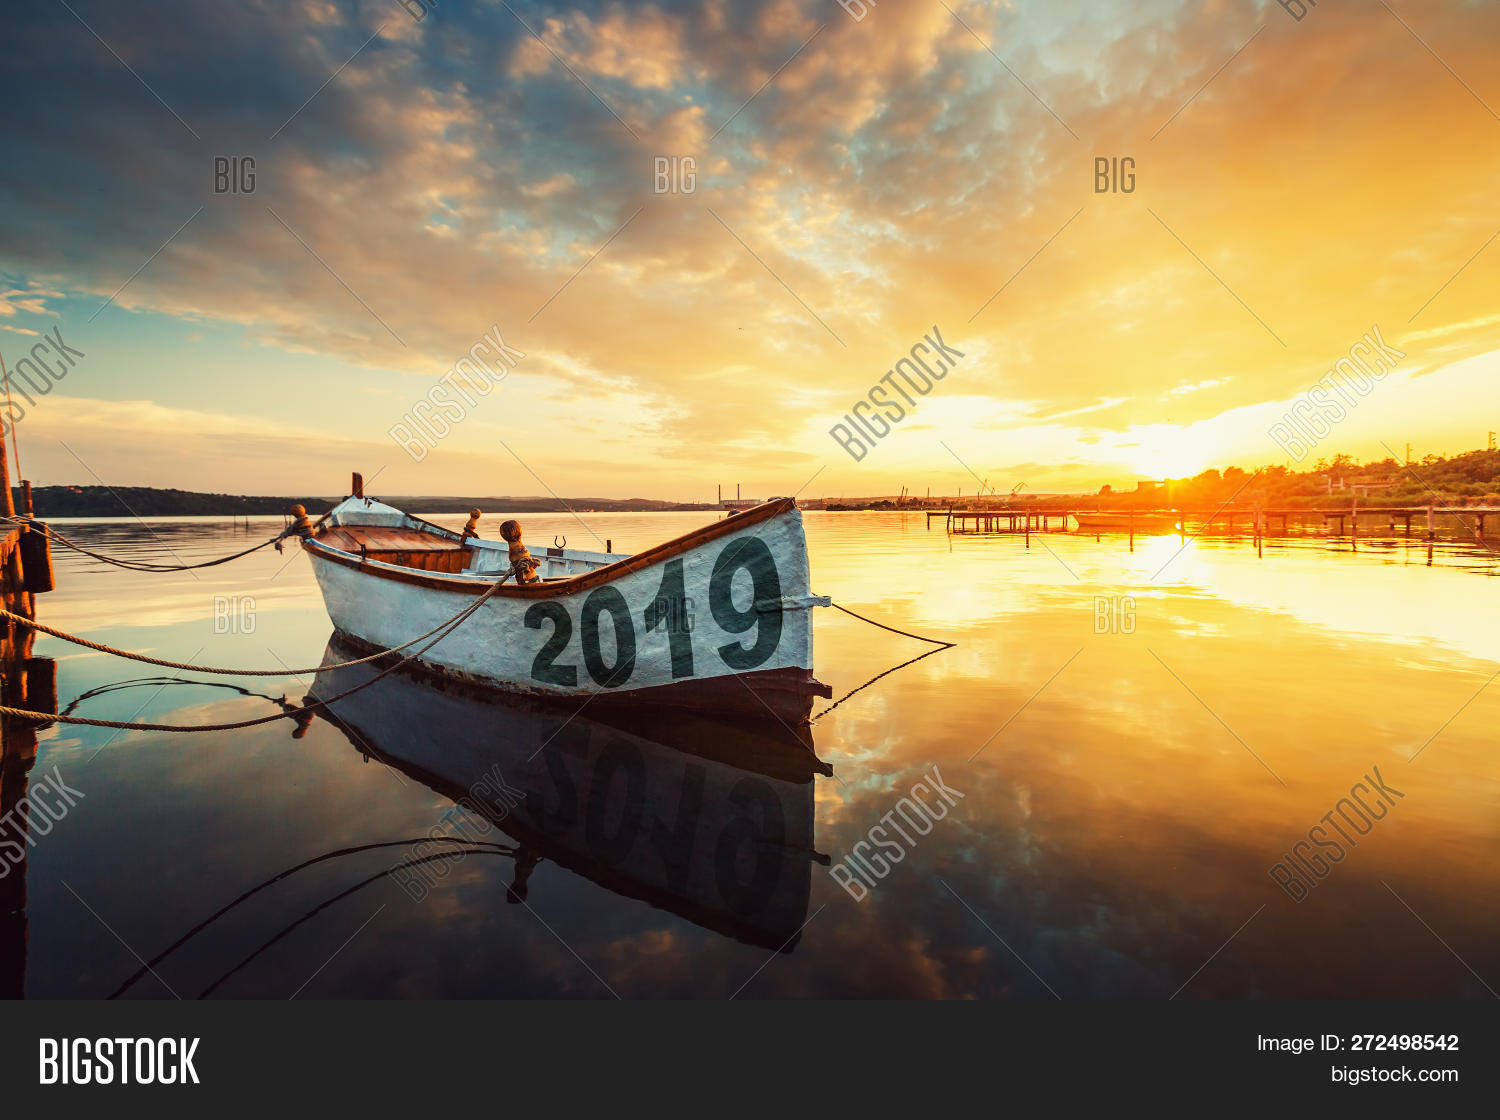 Happy New Year 2019 Image & Photo (Free Trial) | Bigstock